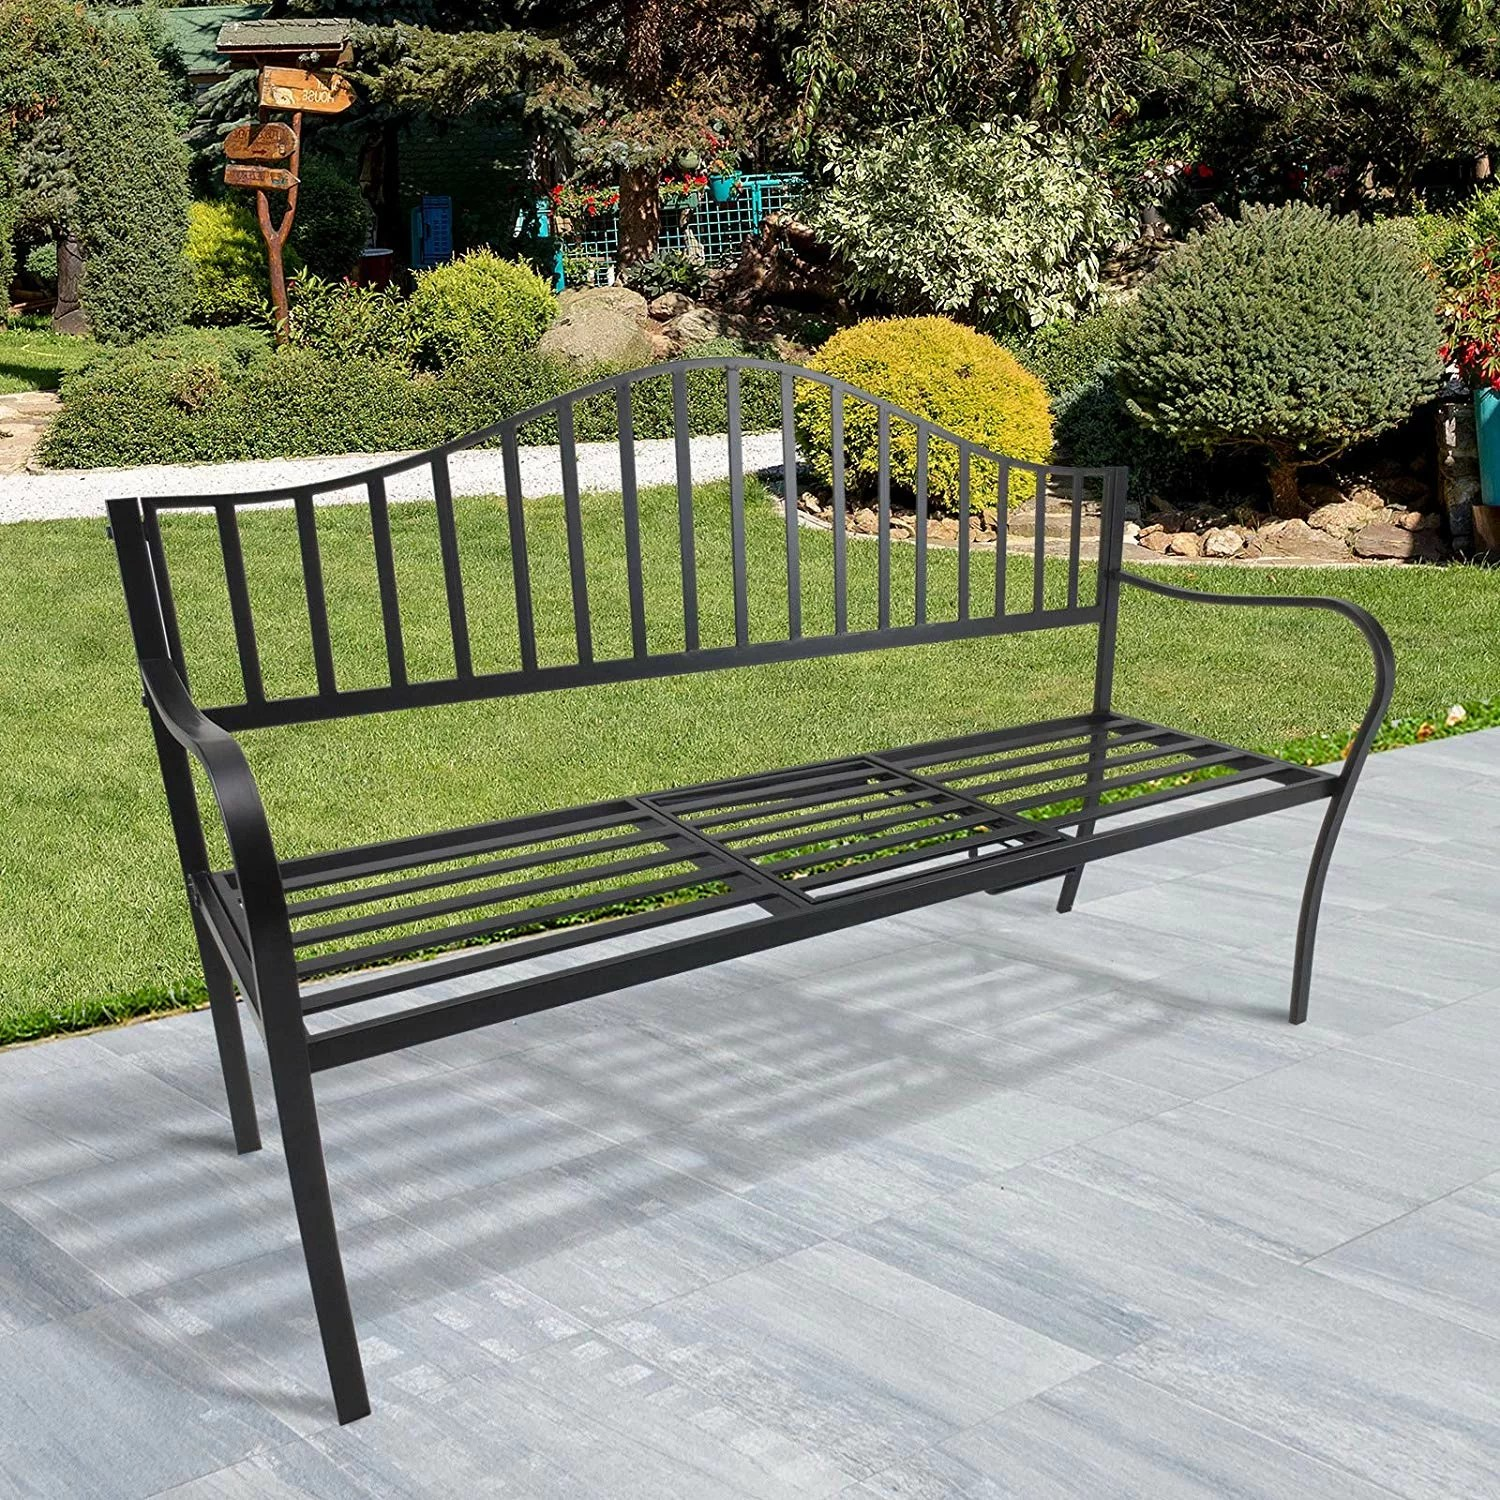 Gartenbank Metall Modern Garten Living Gartenbank Valleywood Aus Metall & Bewertungen | Wayfair.de